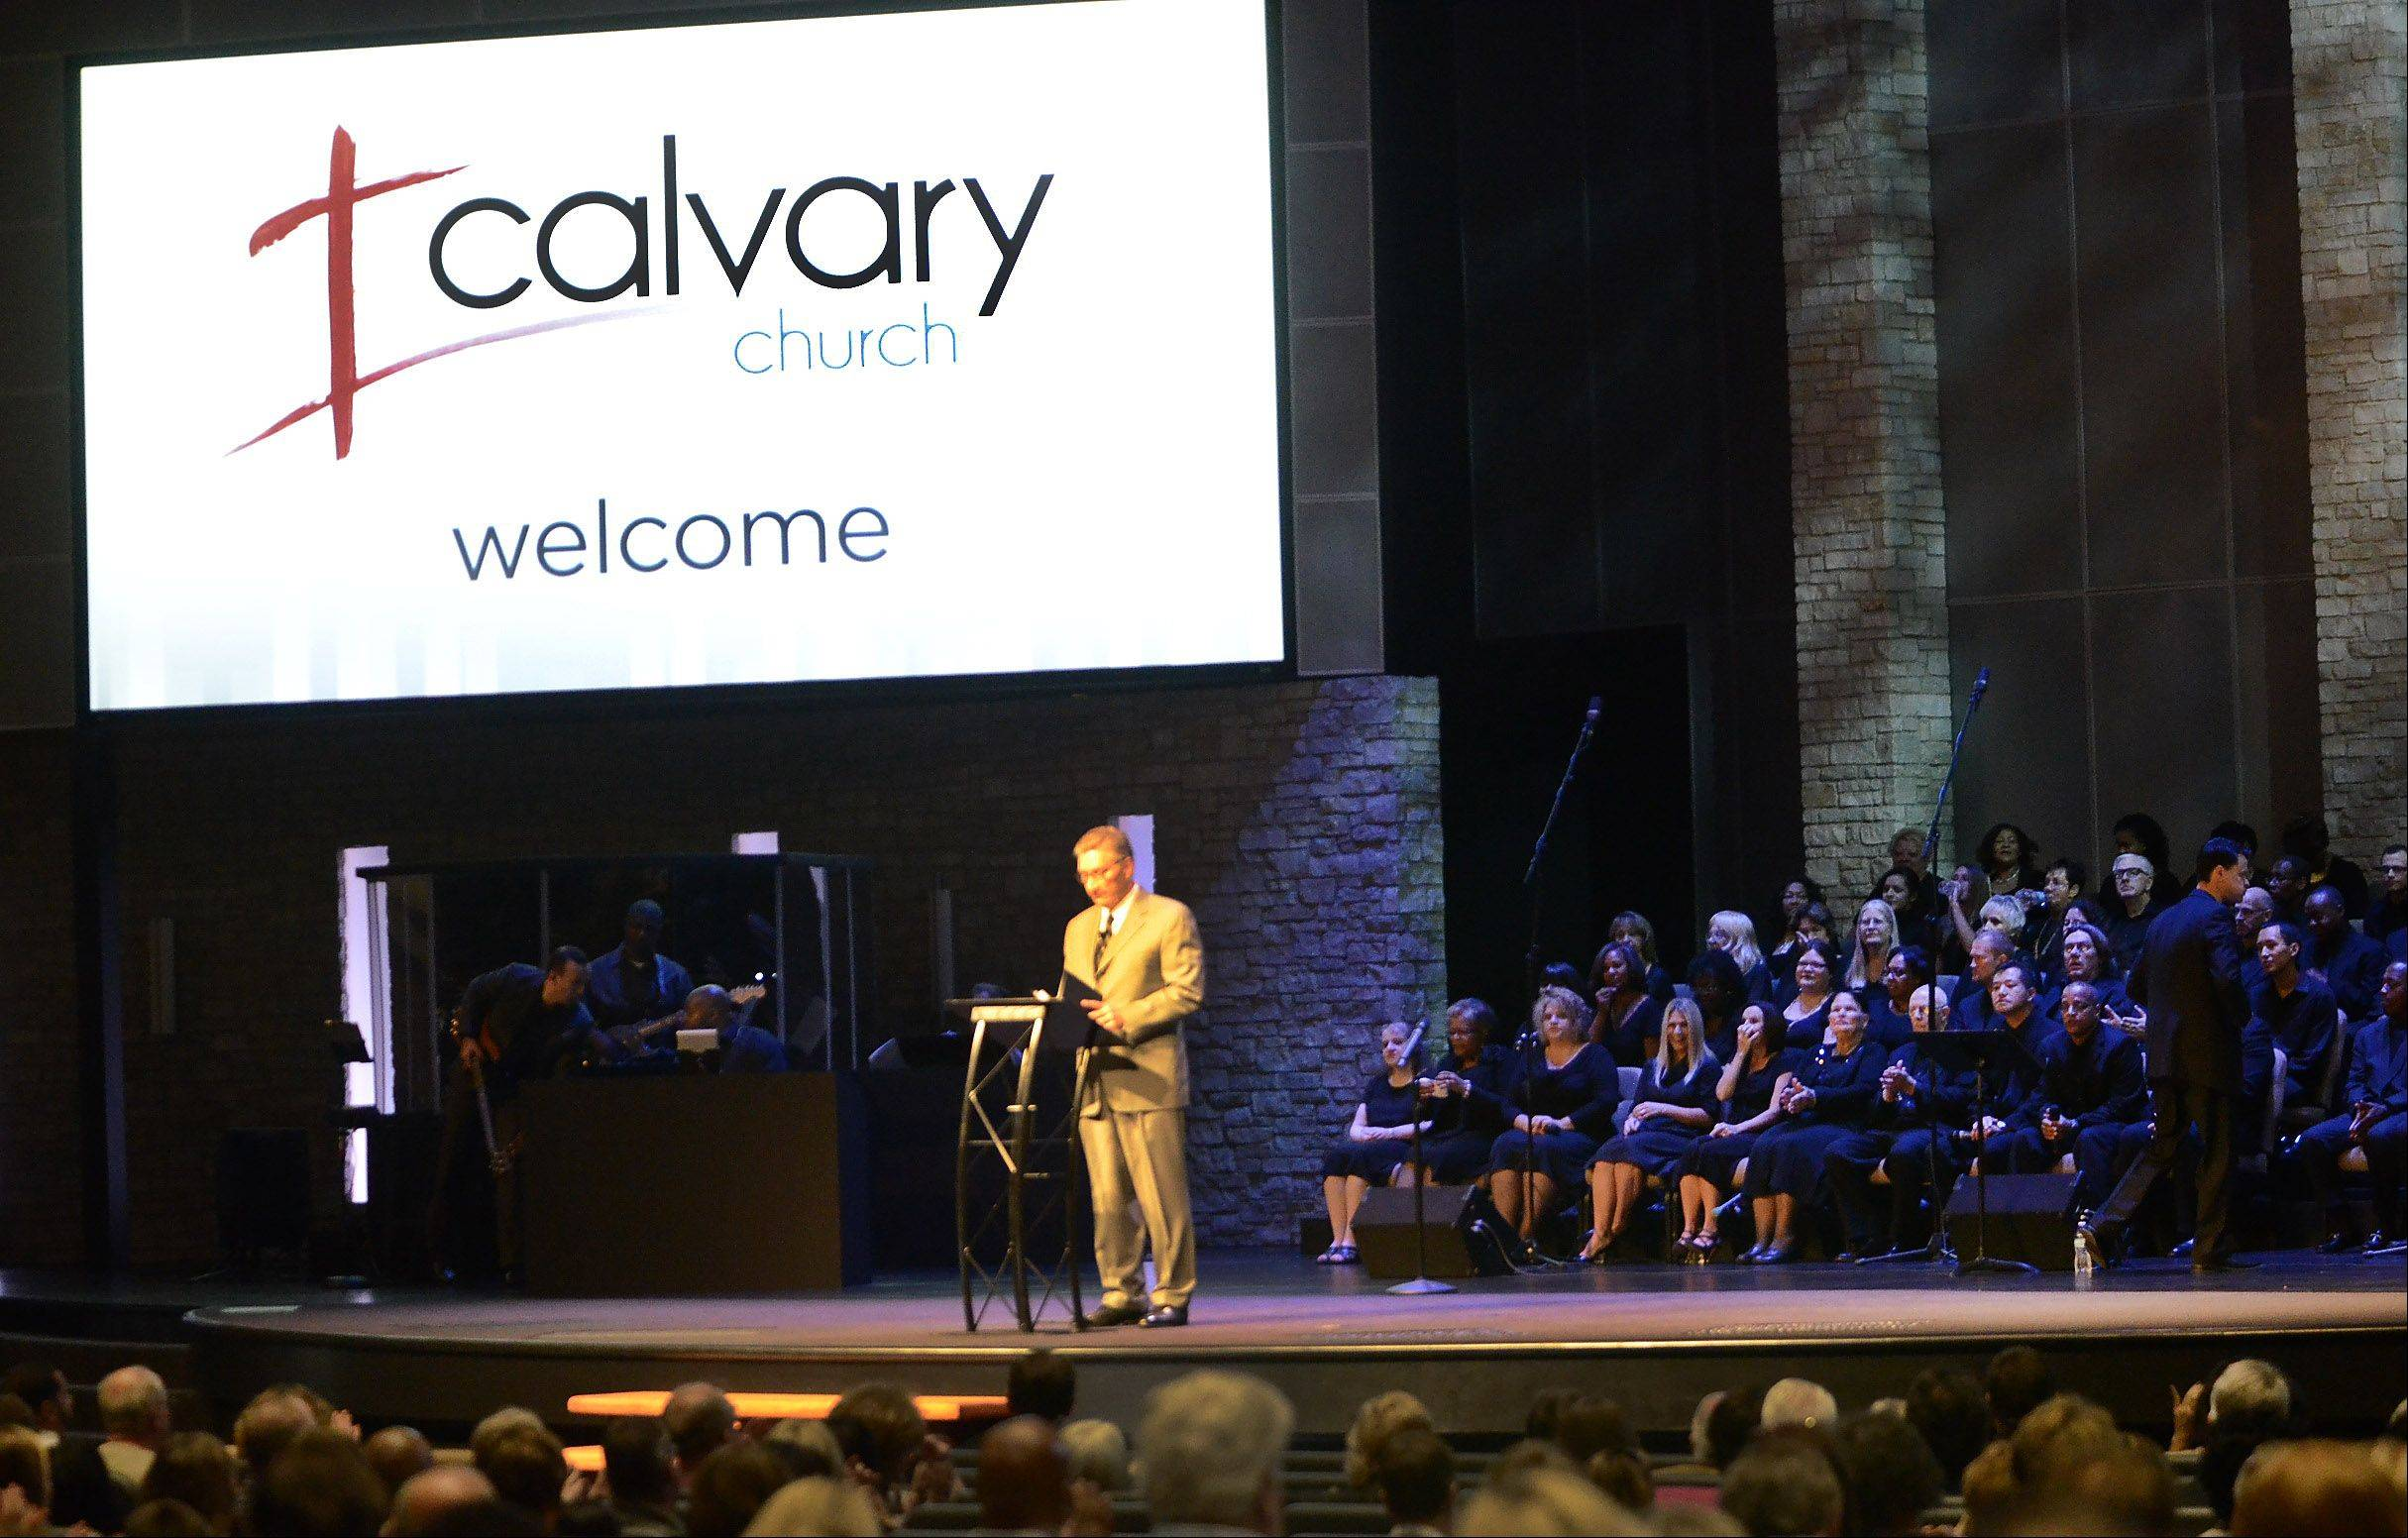 Senior Pastor Randal Ross welcomes the congregation Sunday as Calvary Church in Naperville opened its newly renovated auditorium after more than five months of construction. The choir and orchestra lead the congregation through a history of worship.